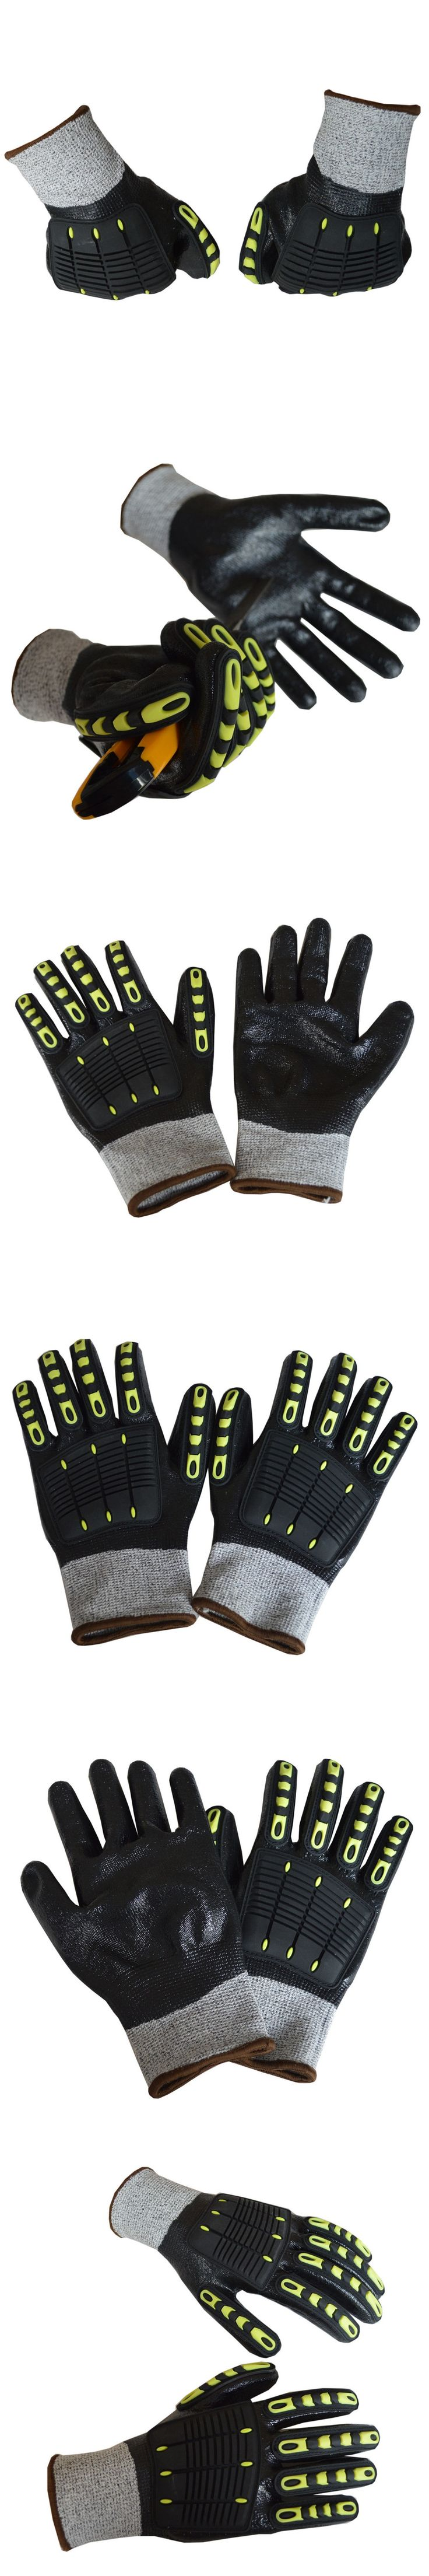 New Product Sales Gloves Mountain Bike Bicycle Gloves Riding Gloves Level 5 Protection Working A2